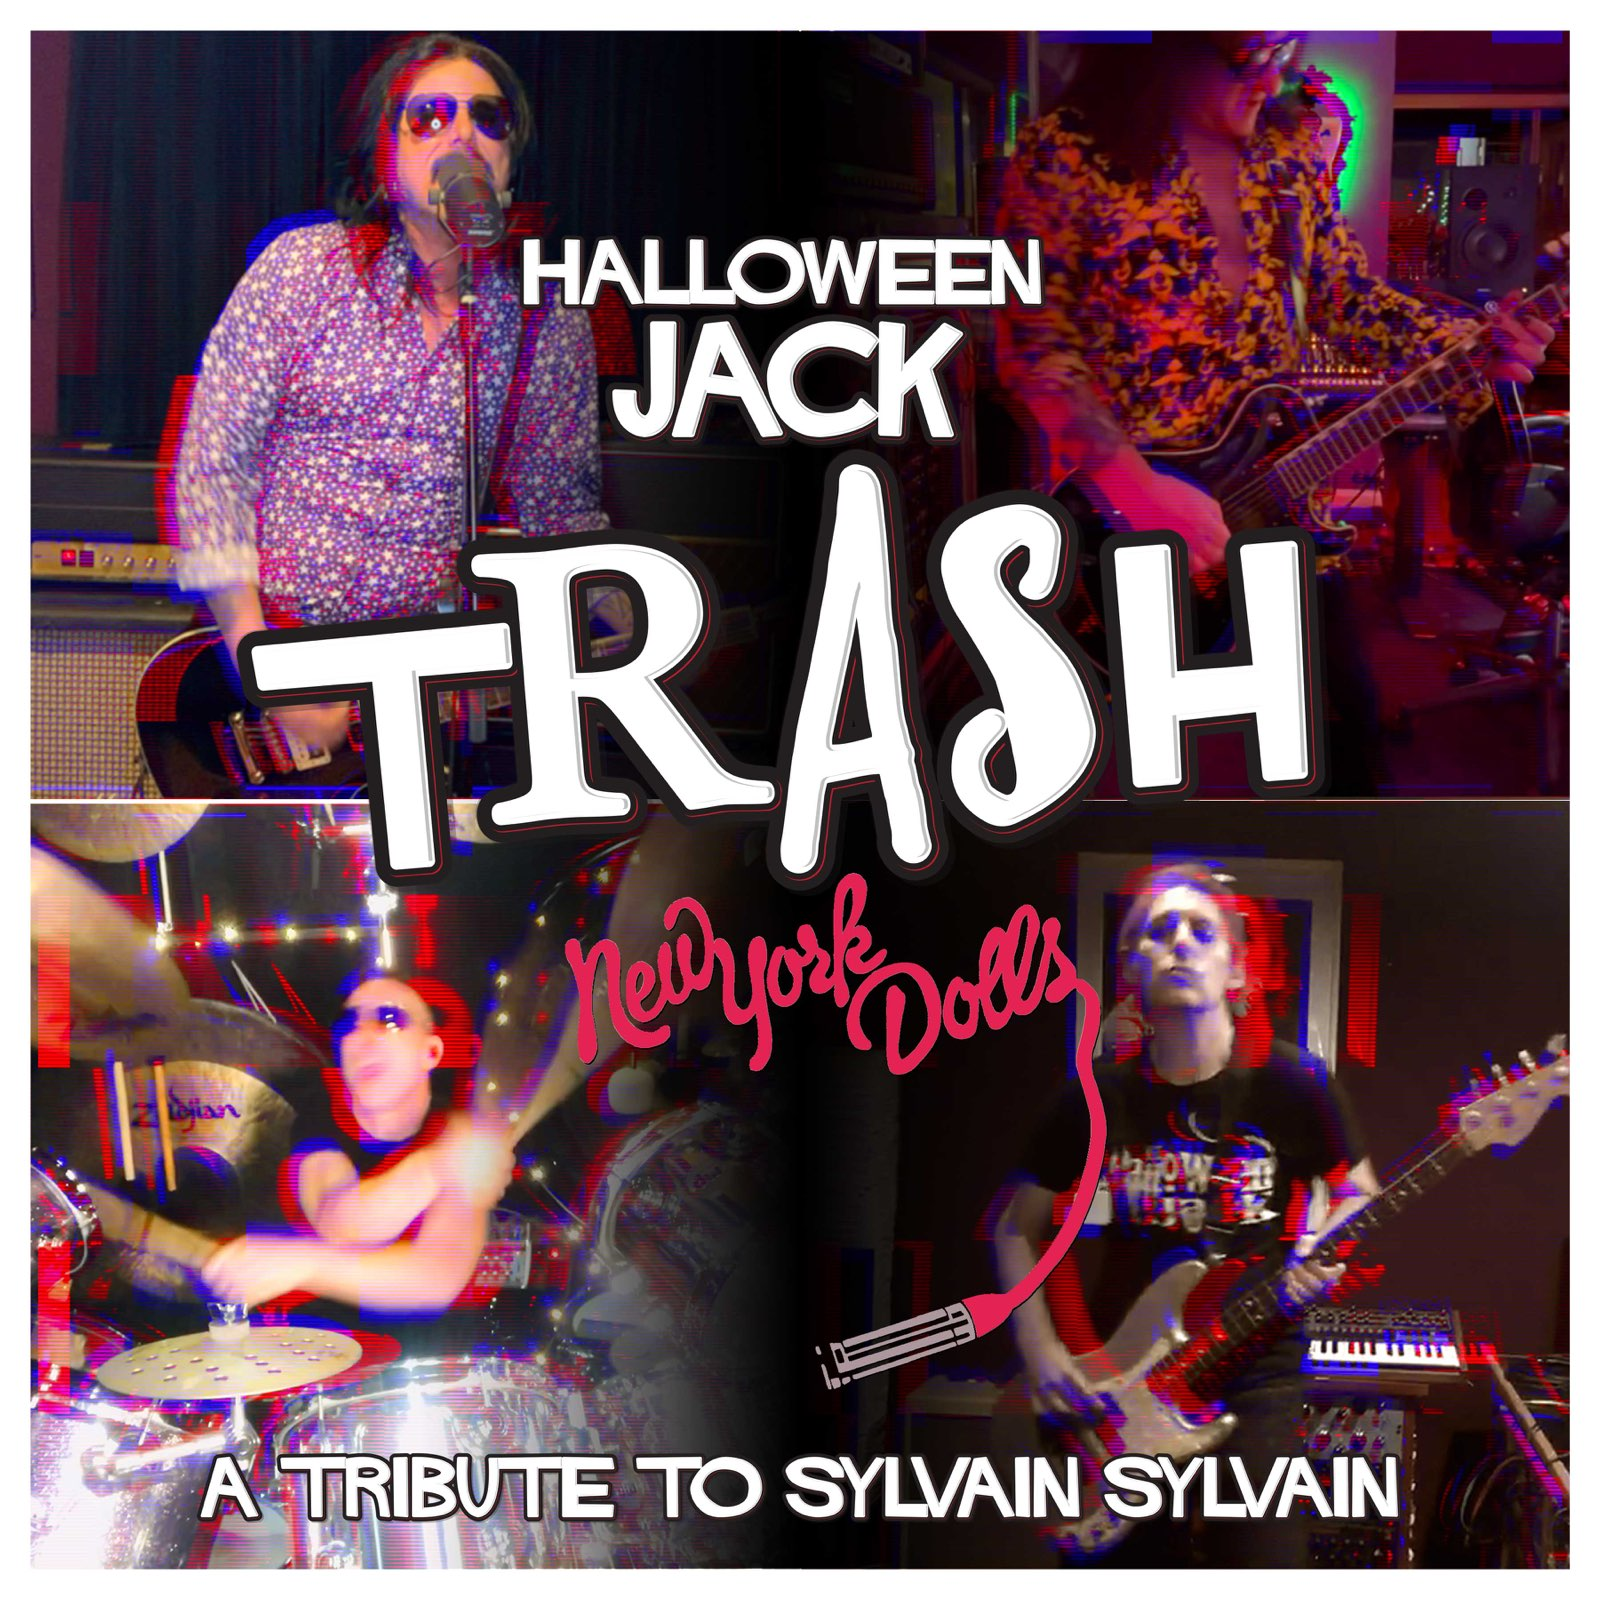 """Halloween Jack Releases Cover """"TRASH"""" Video as Tribute to New York Dolls' Sylvain Sylvain 1"""